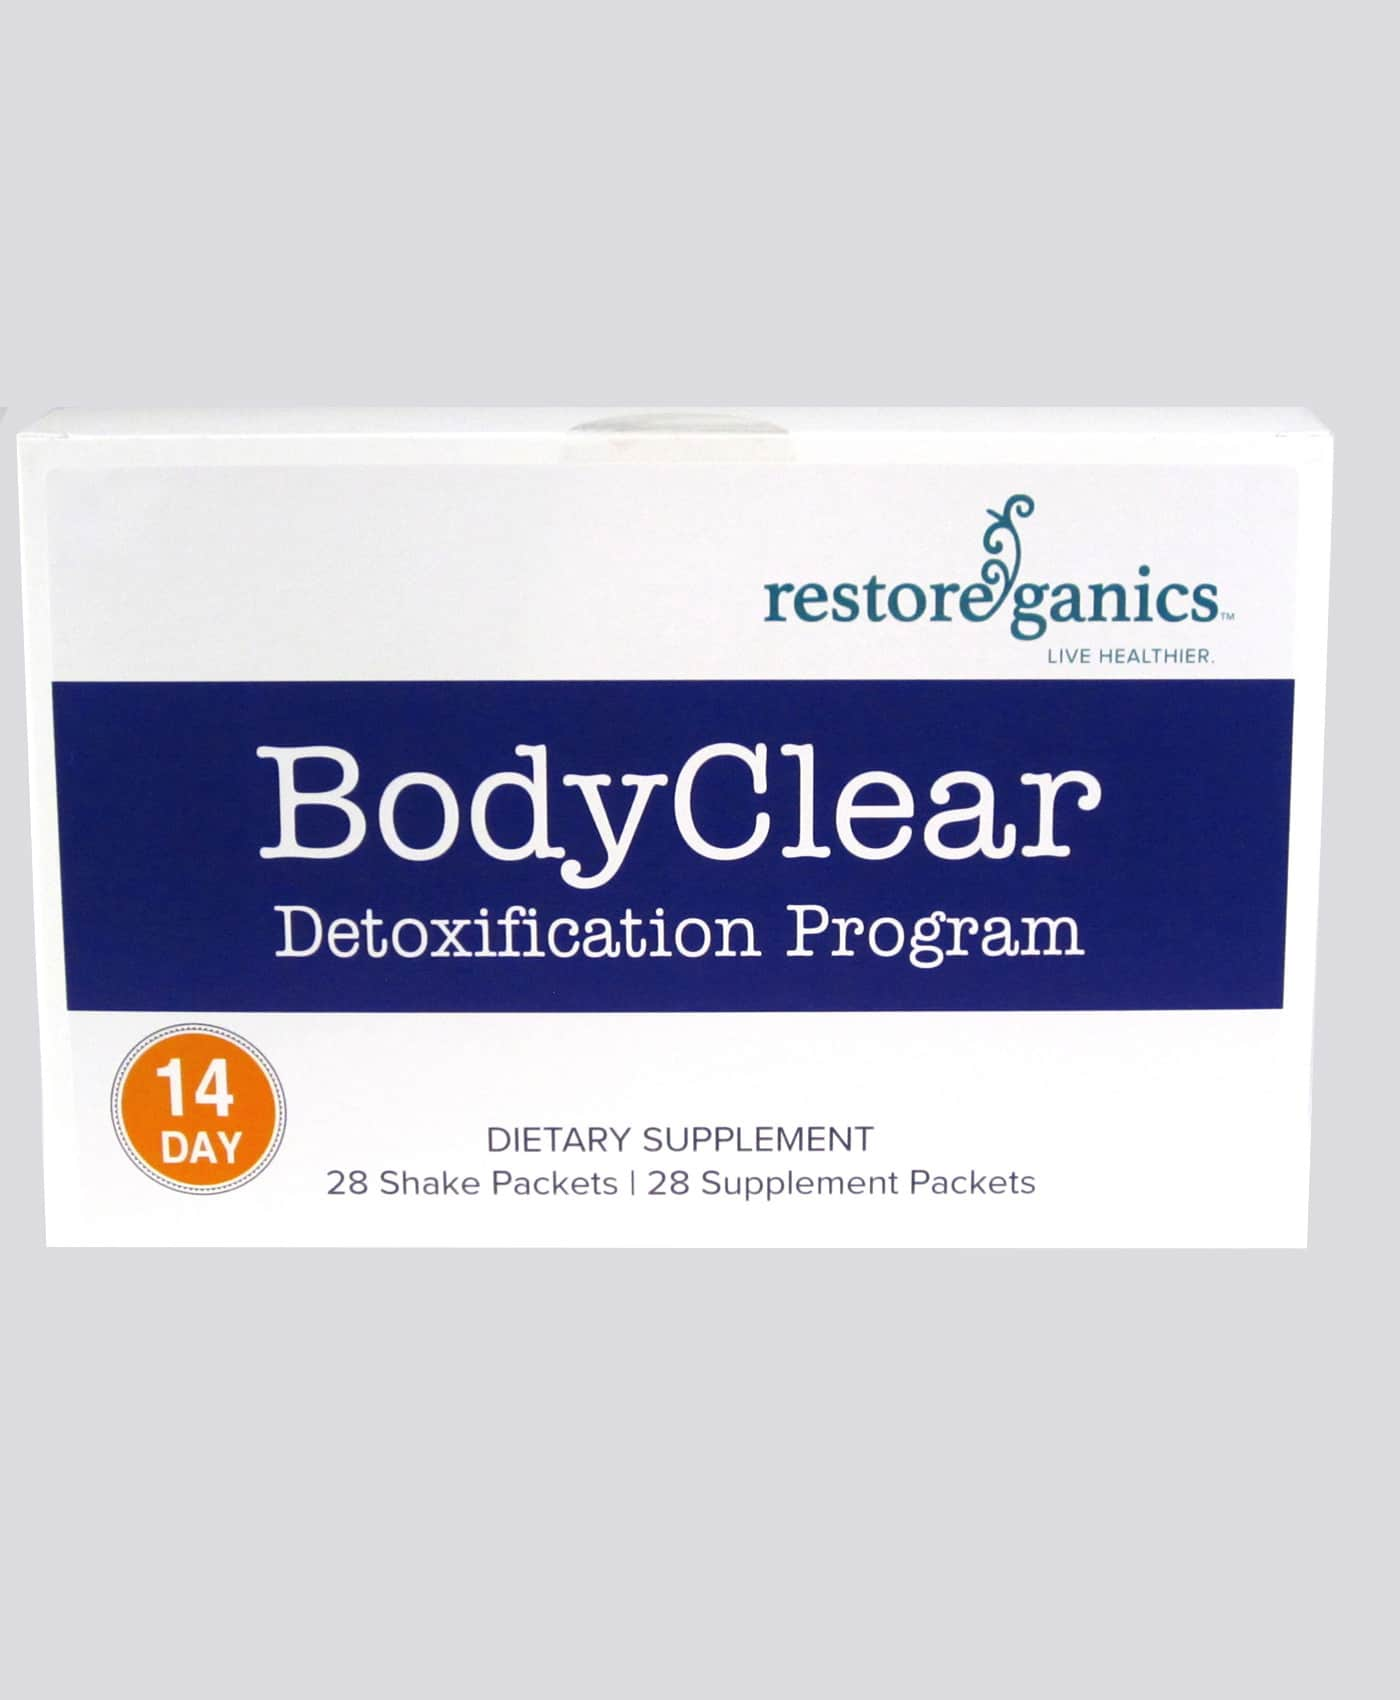 The BodyClear Detoxification Program